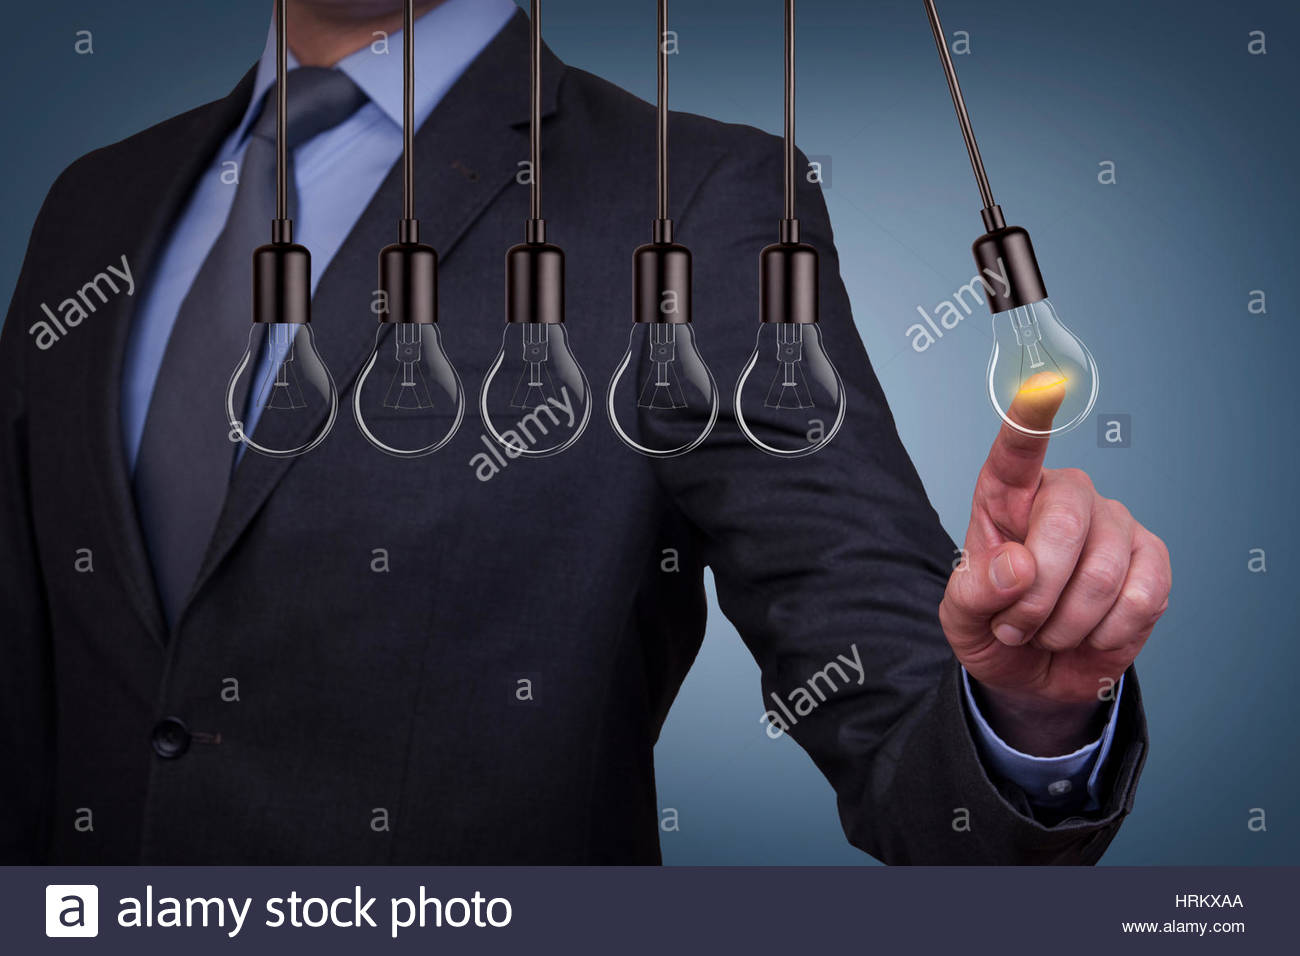 Innovation Concepts Human Hand Touching Light Bulb - Stock Image